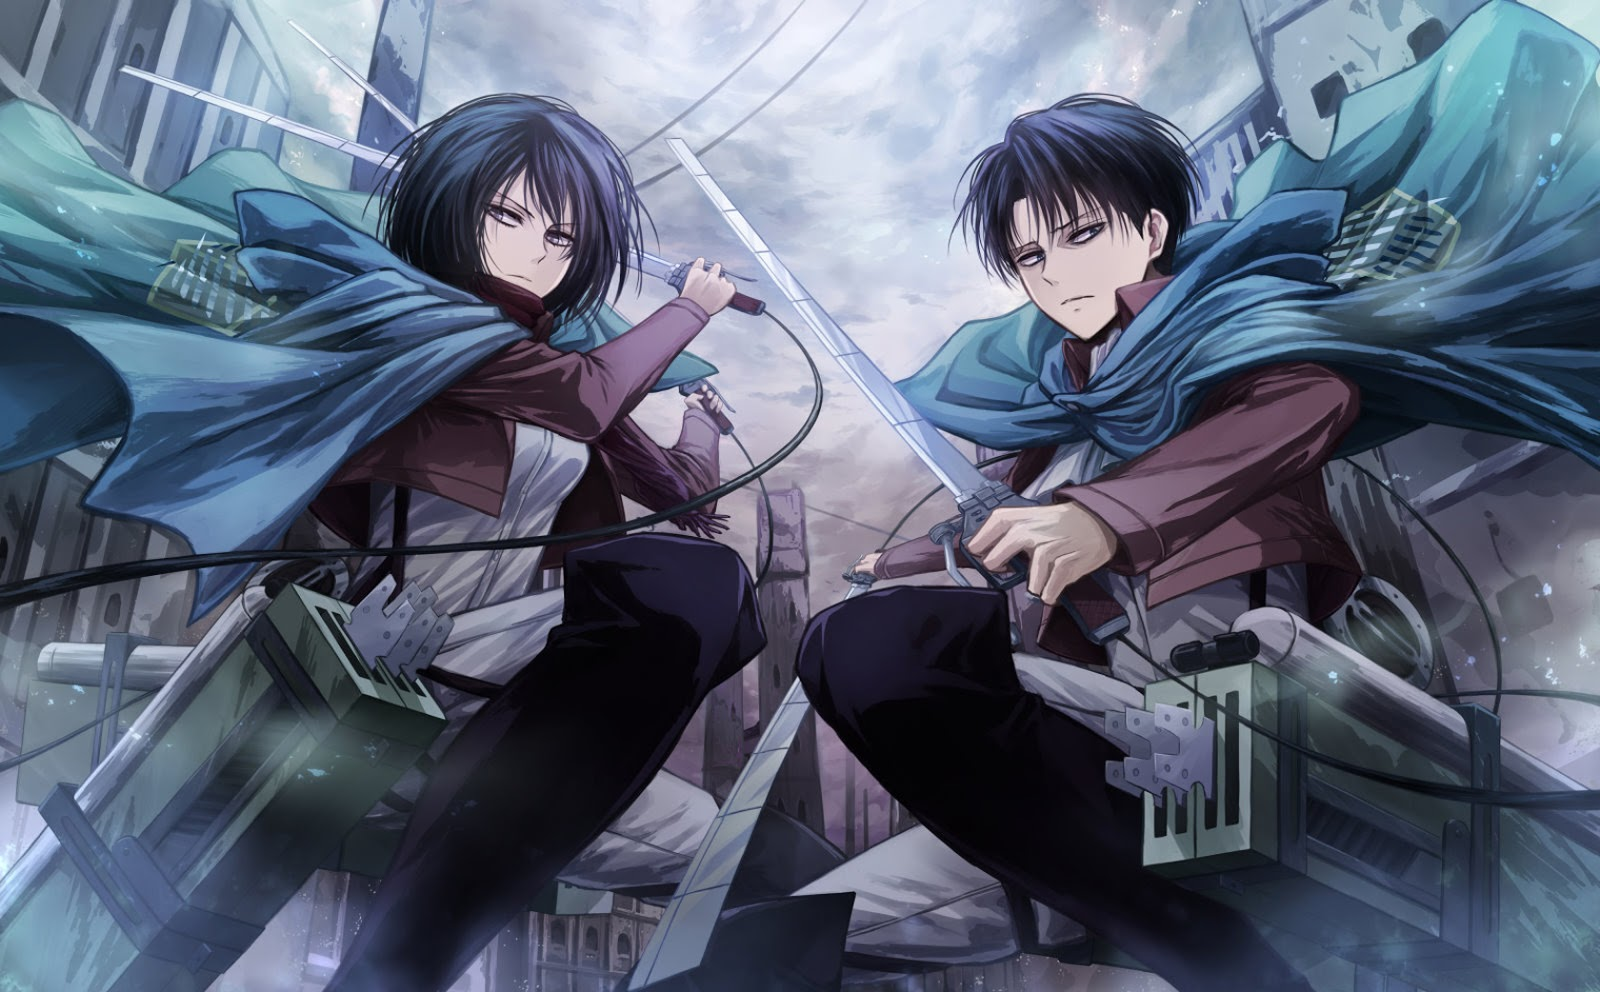 Levi Rivaille Levi Rivaille Cape 3D Maneuver Gear Attack on Titan 1600x992